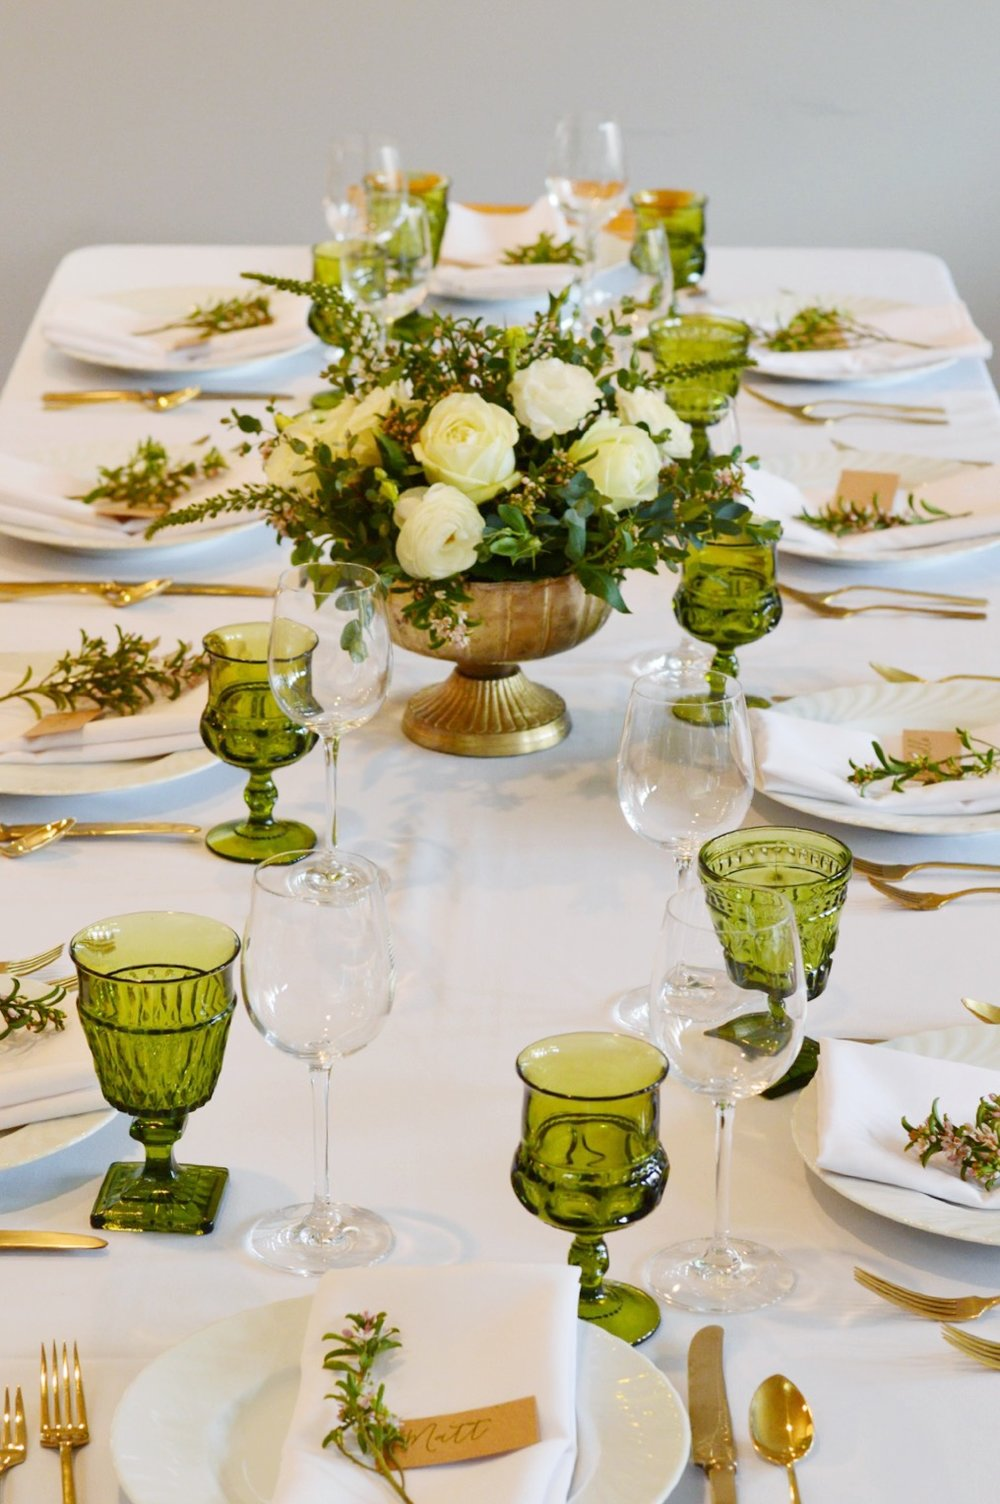 Vintage Inspired Bridal Shower  Bridal Shower Table Setting  Green and White Bridal Shower   Planning by Wrap It Up Parties